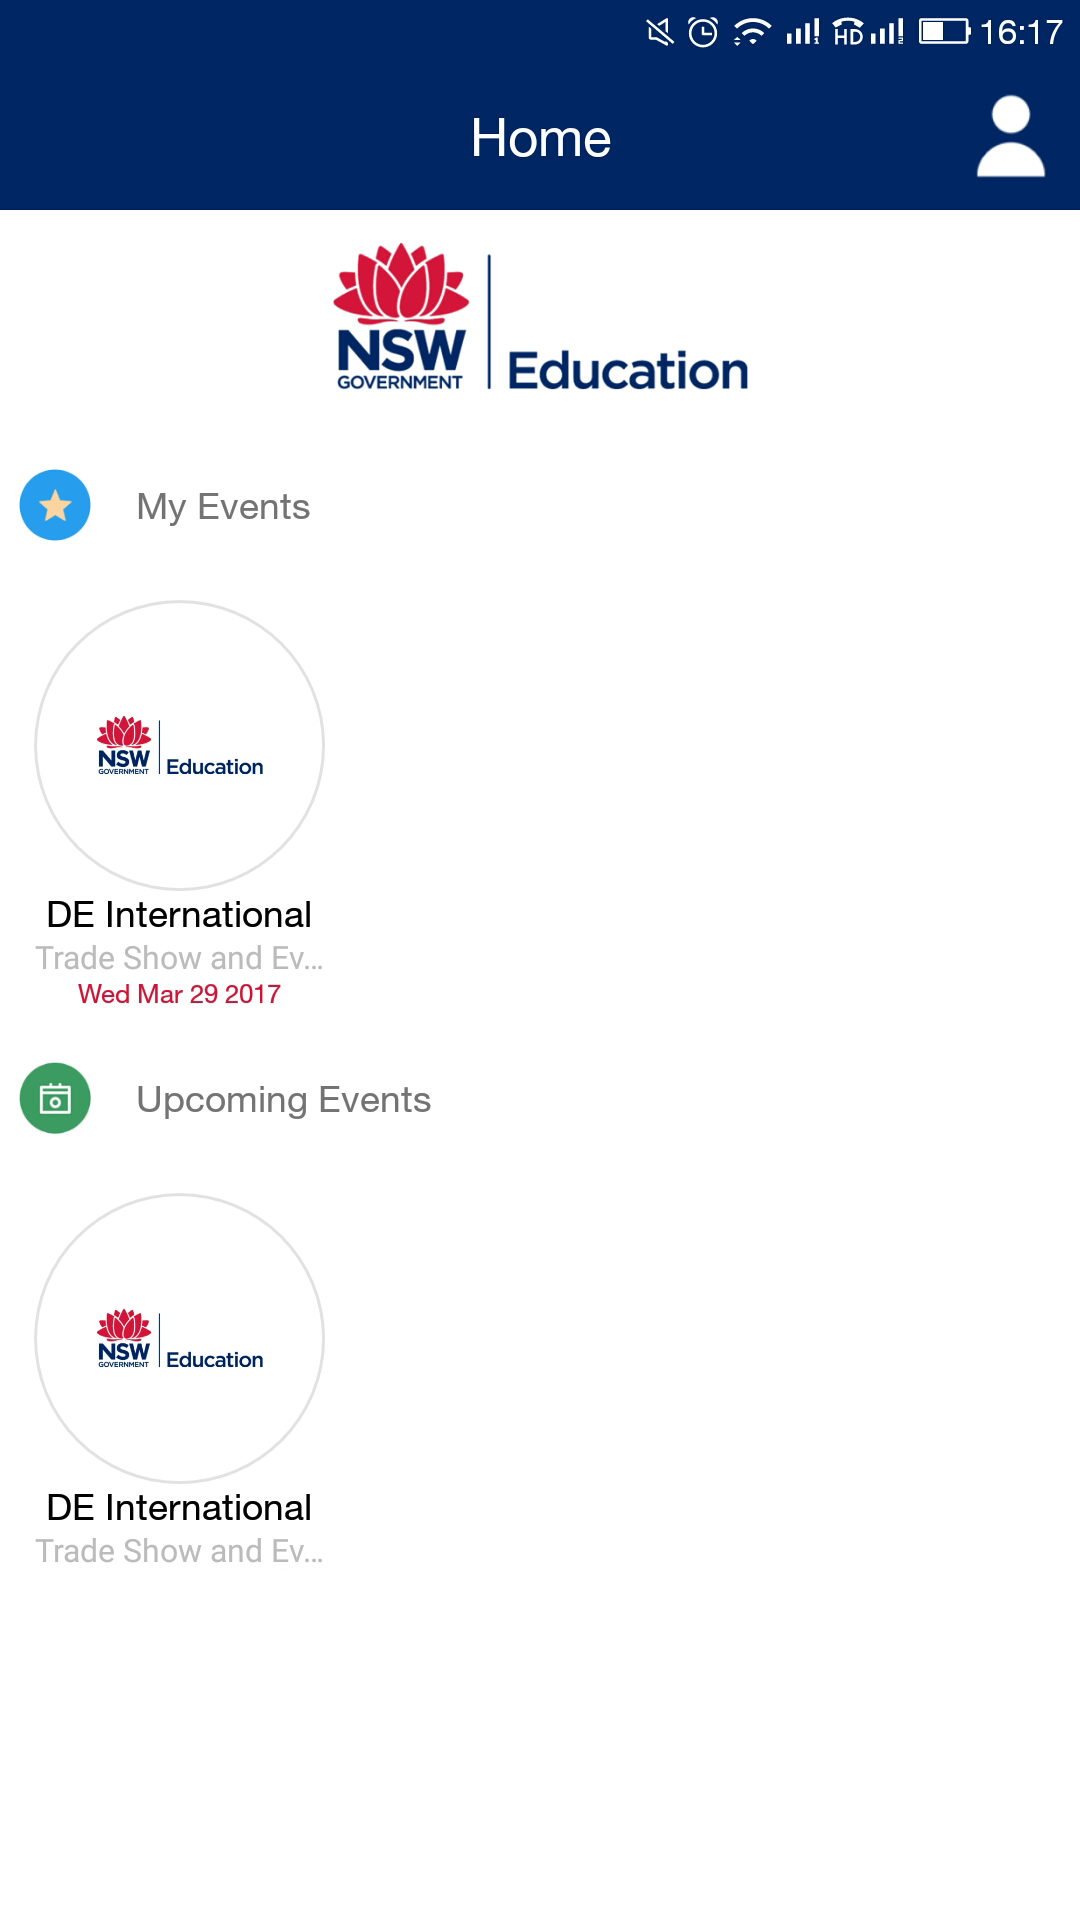 DE International Multi Event App | webMOBI | NSW